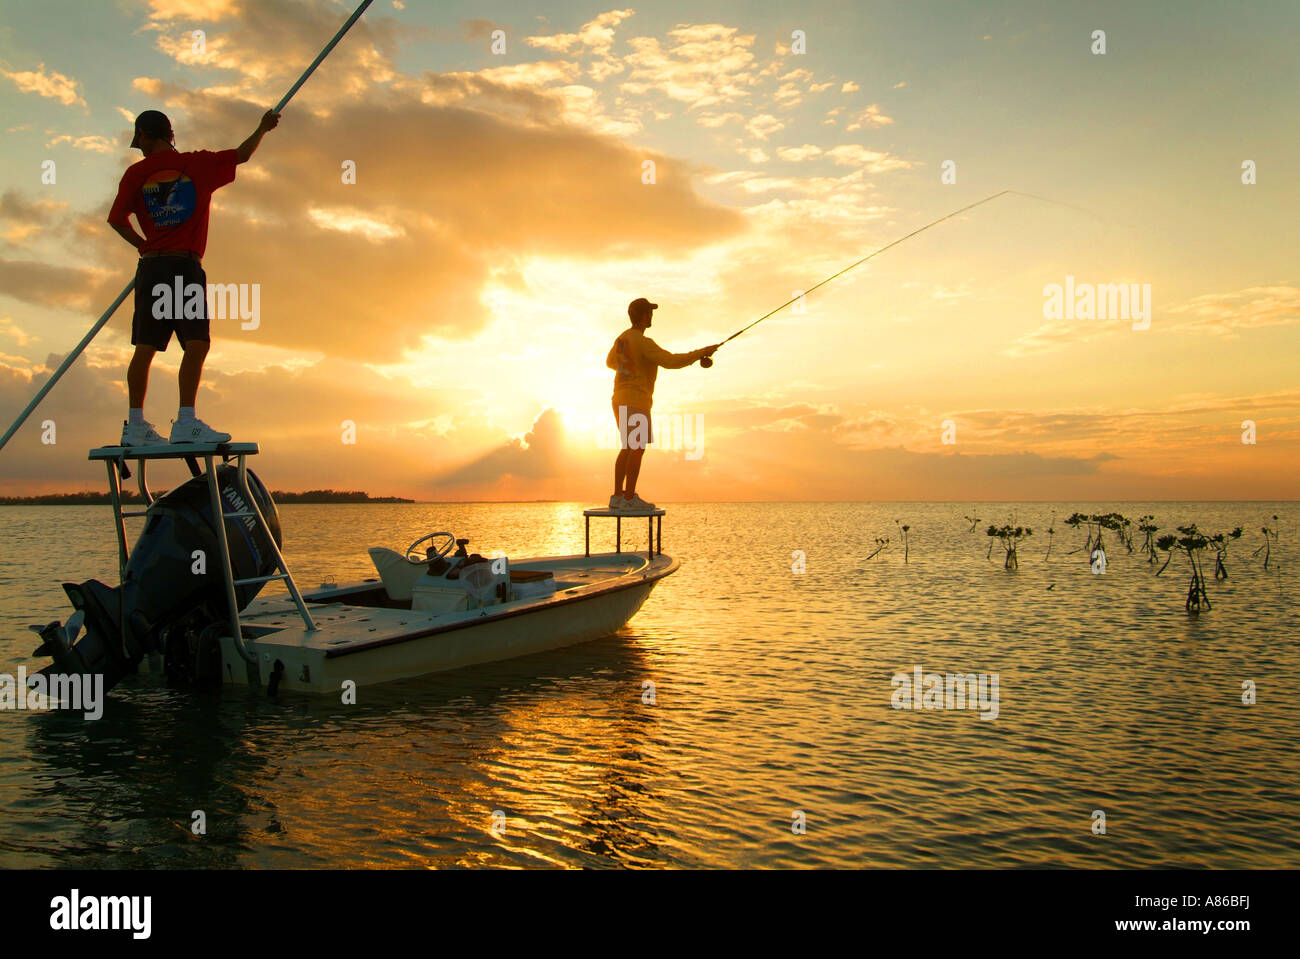 Salt water fly fishing at sunset for bone fish in the Upper Florida Keys Islamorada Stock Photo